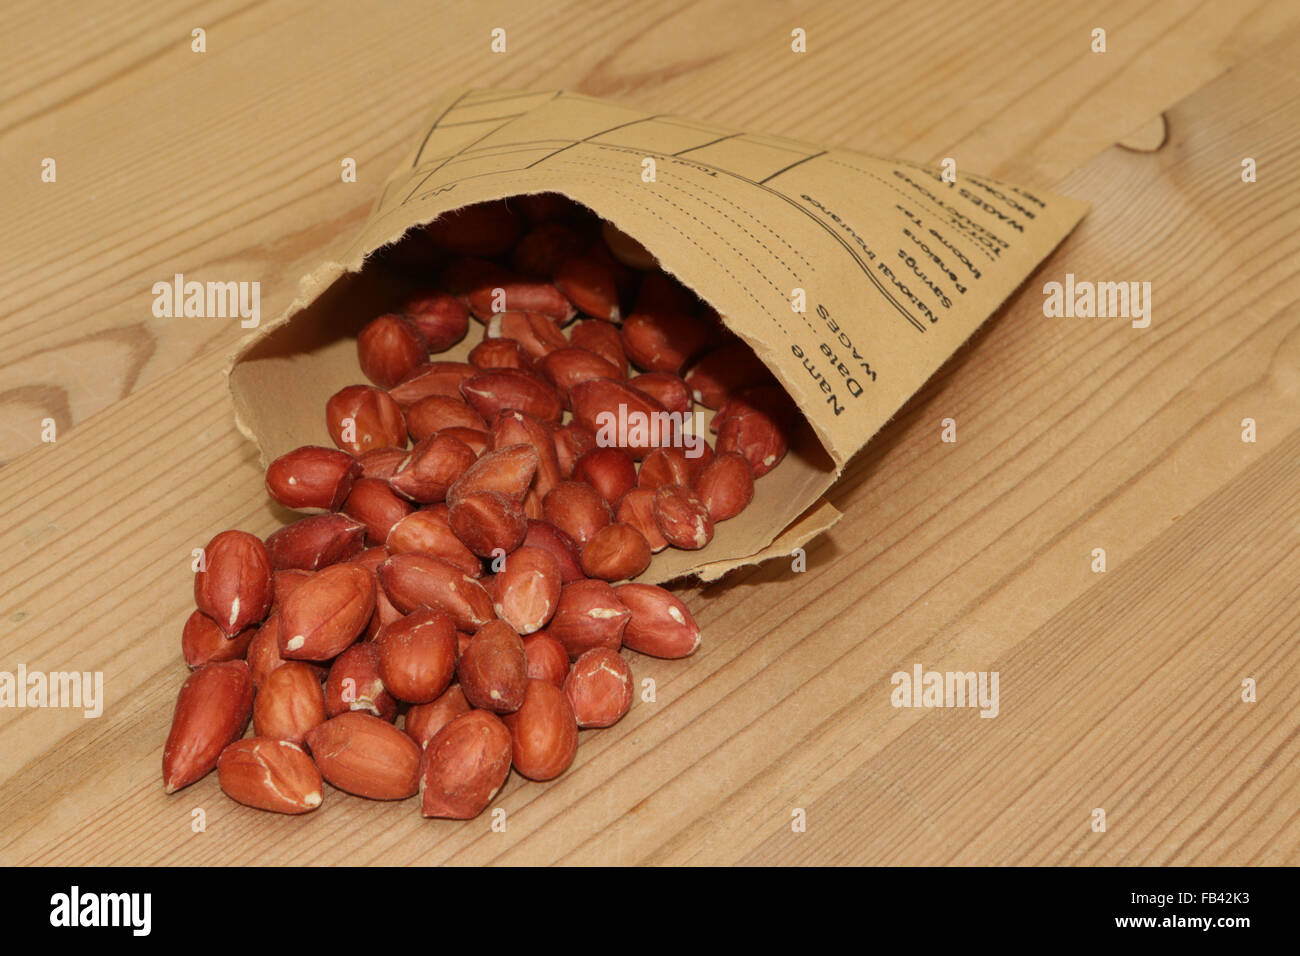 Wage packet containing peanuts - Stock Image